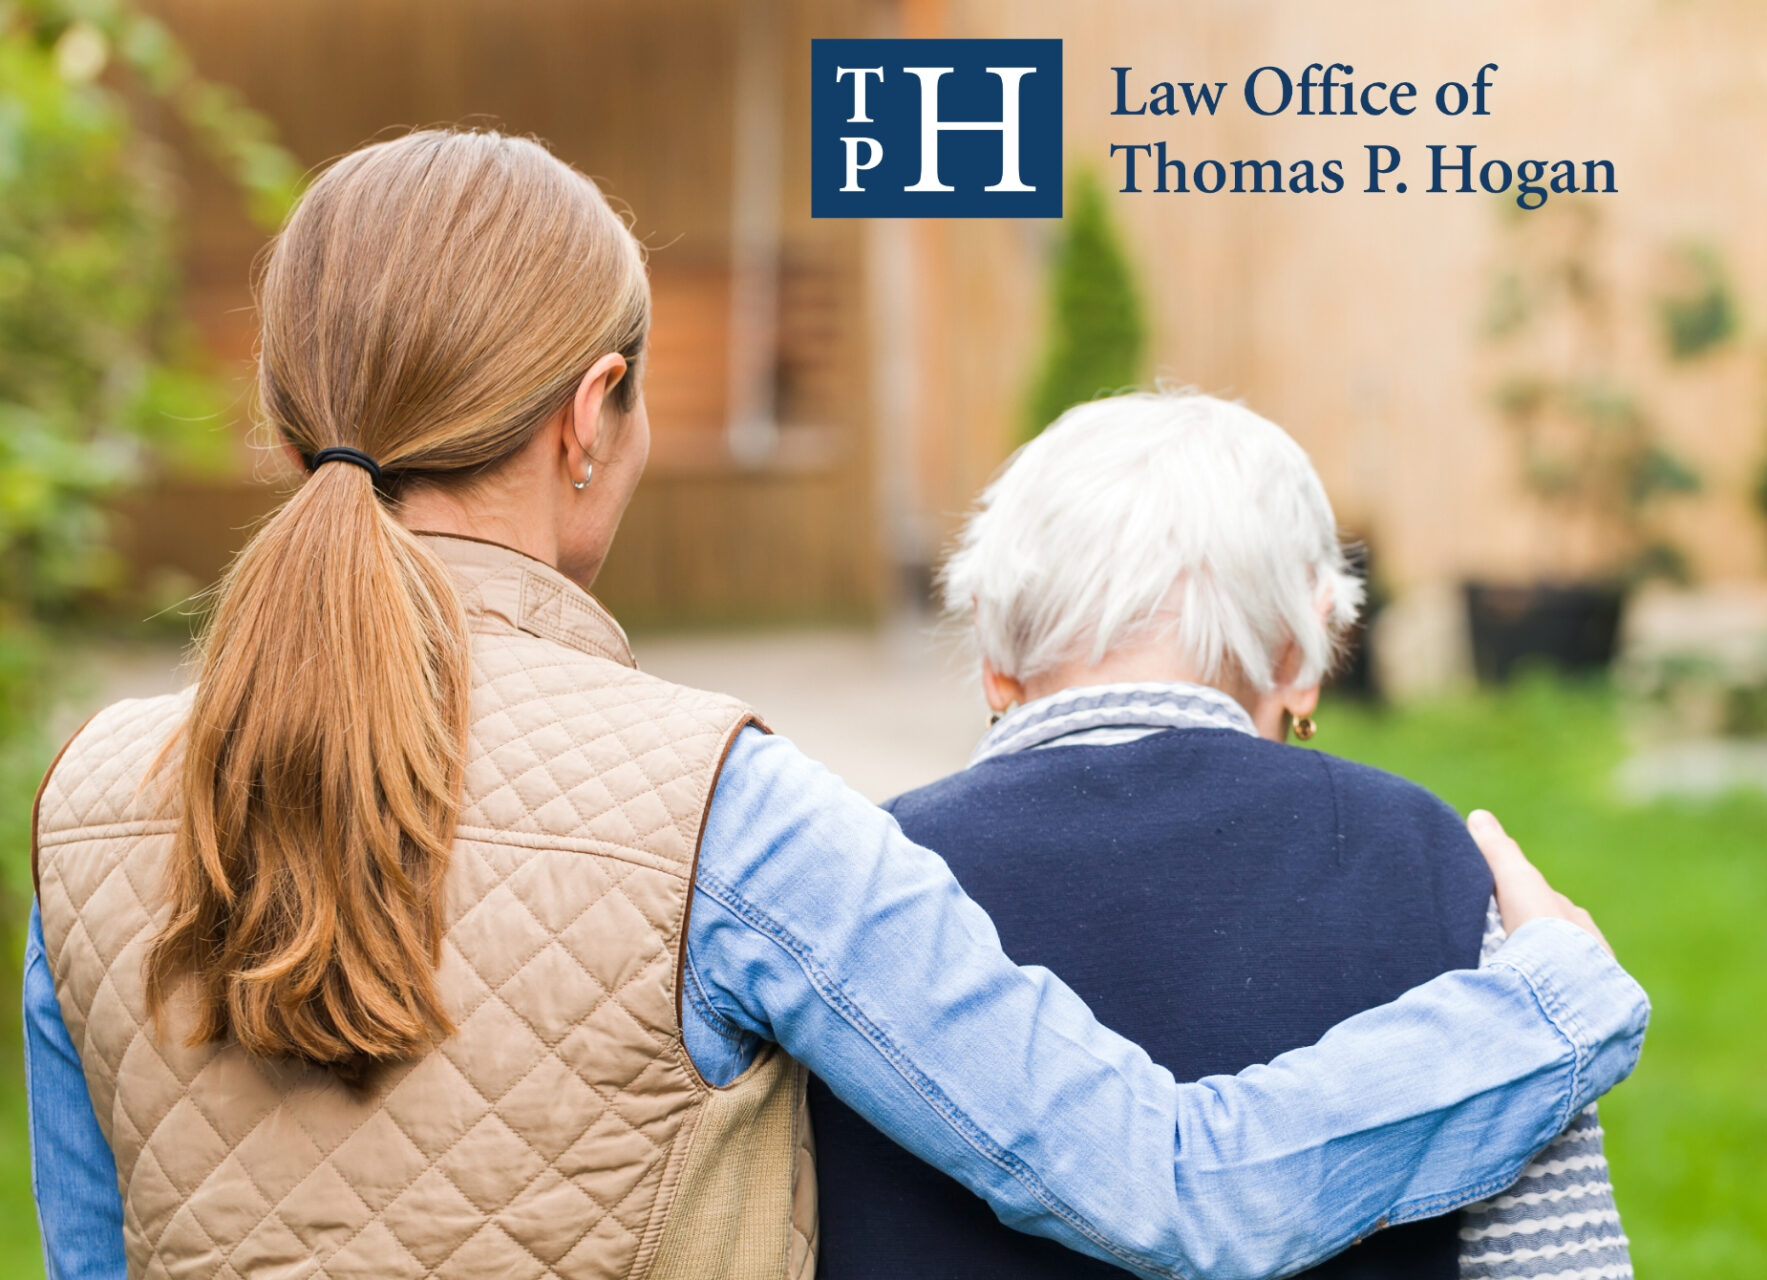 Law Office of Thomas P. Hogan Covid 19 and nursing home lawsuits